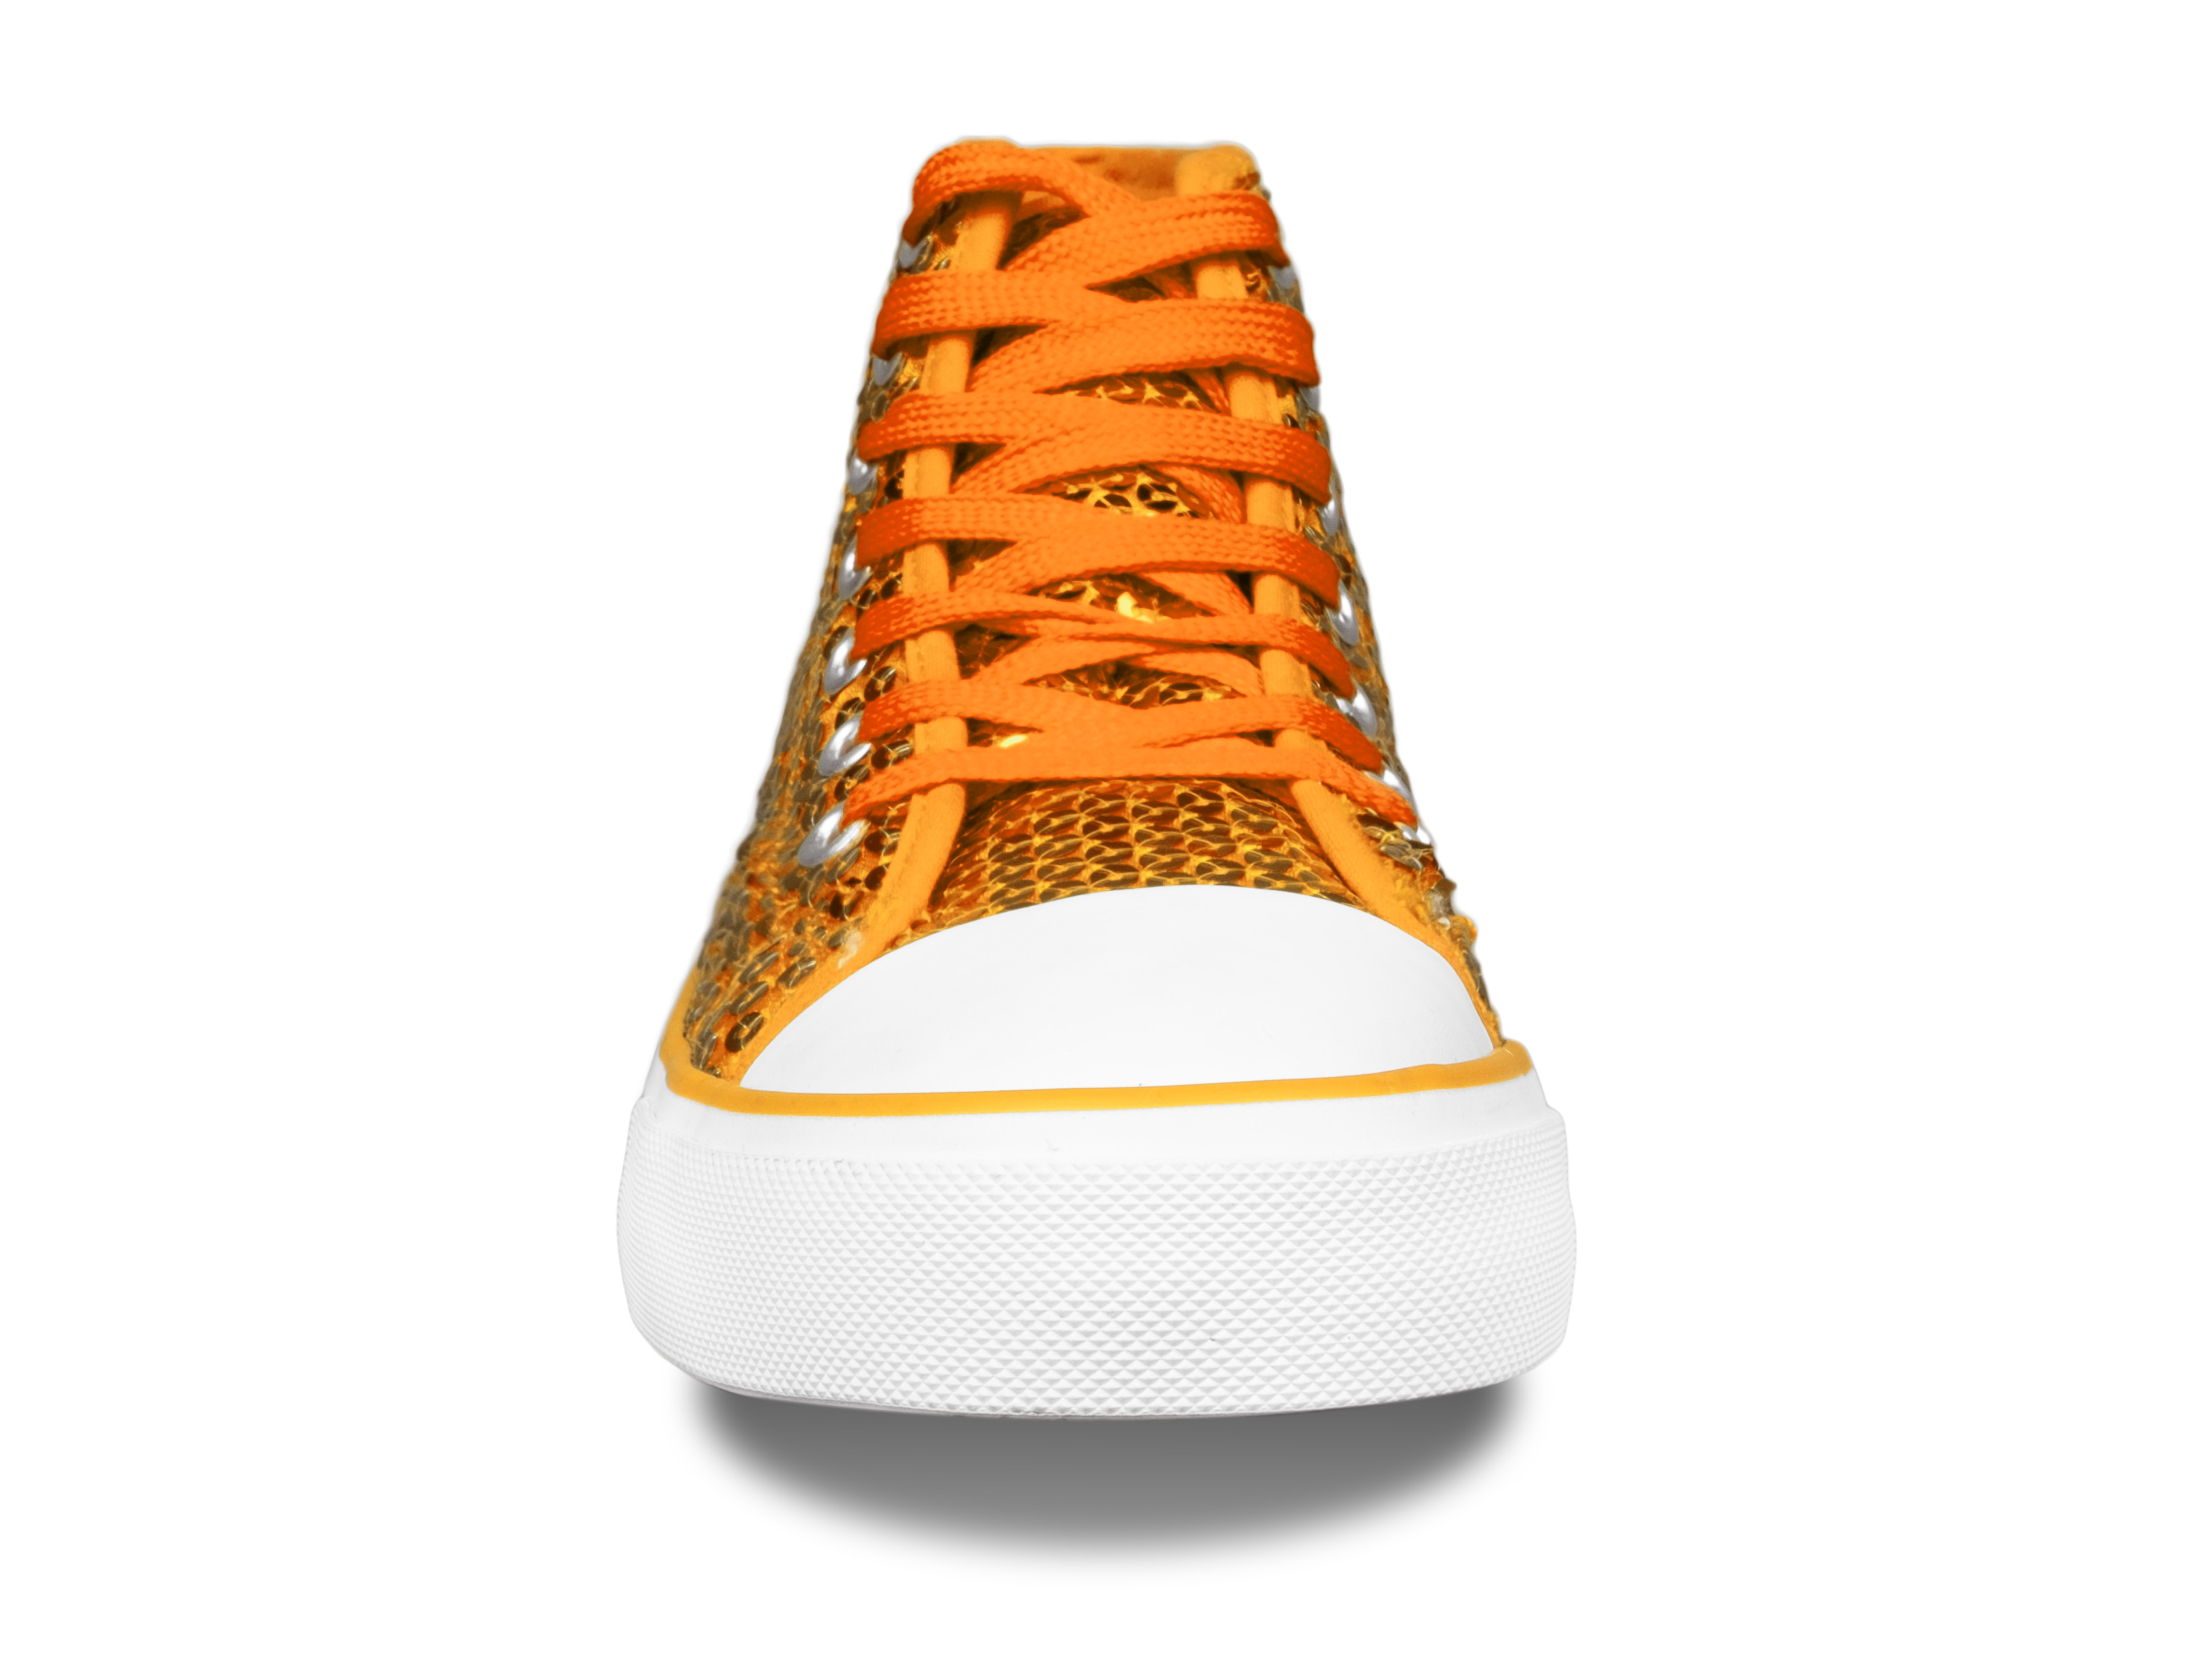 Paillettenschuh orange Gr. 36